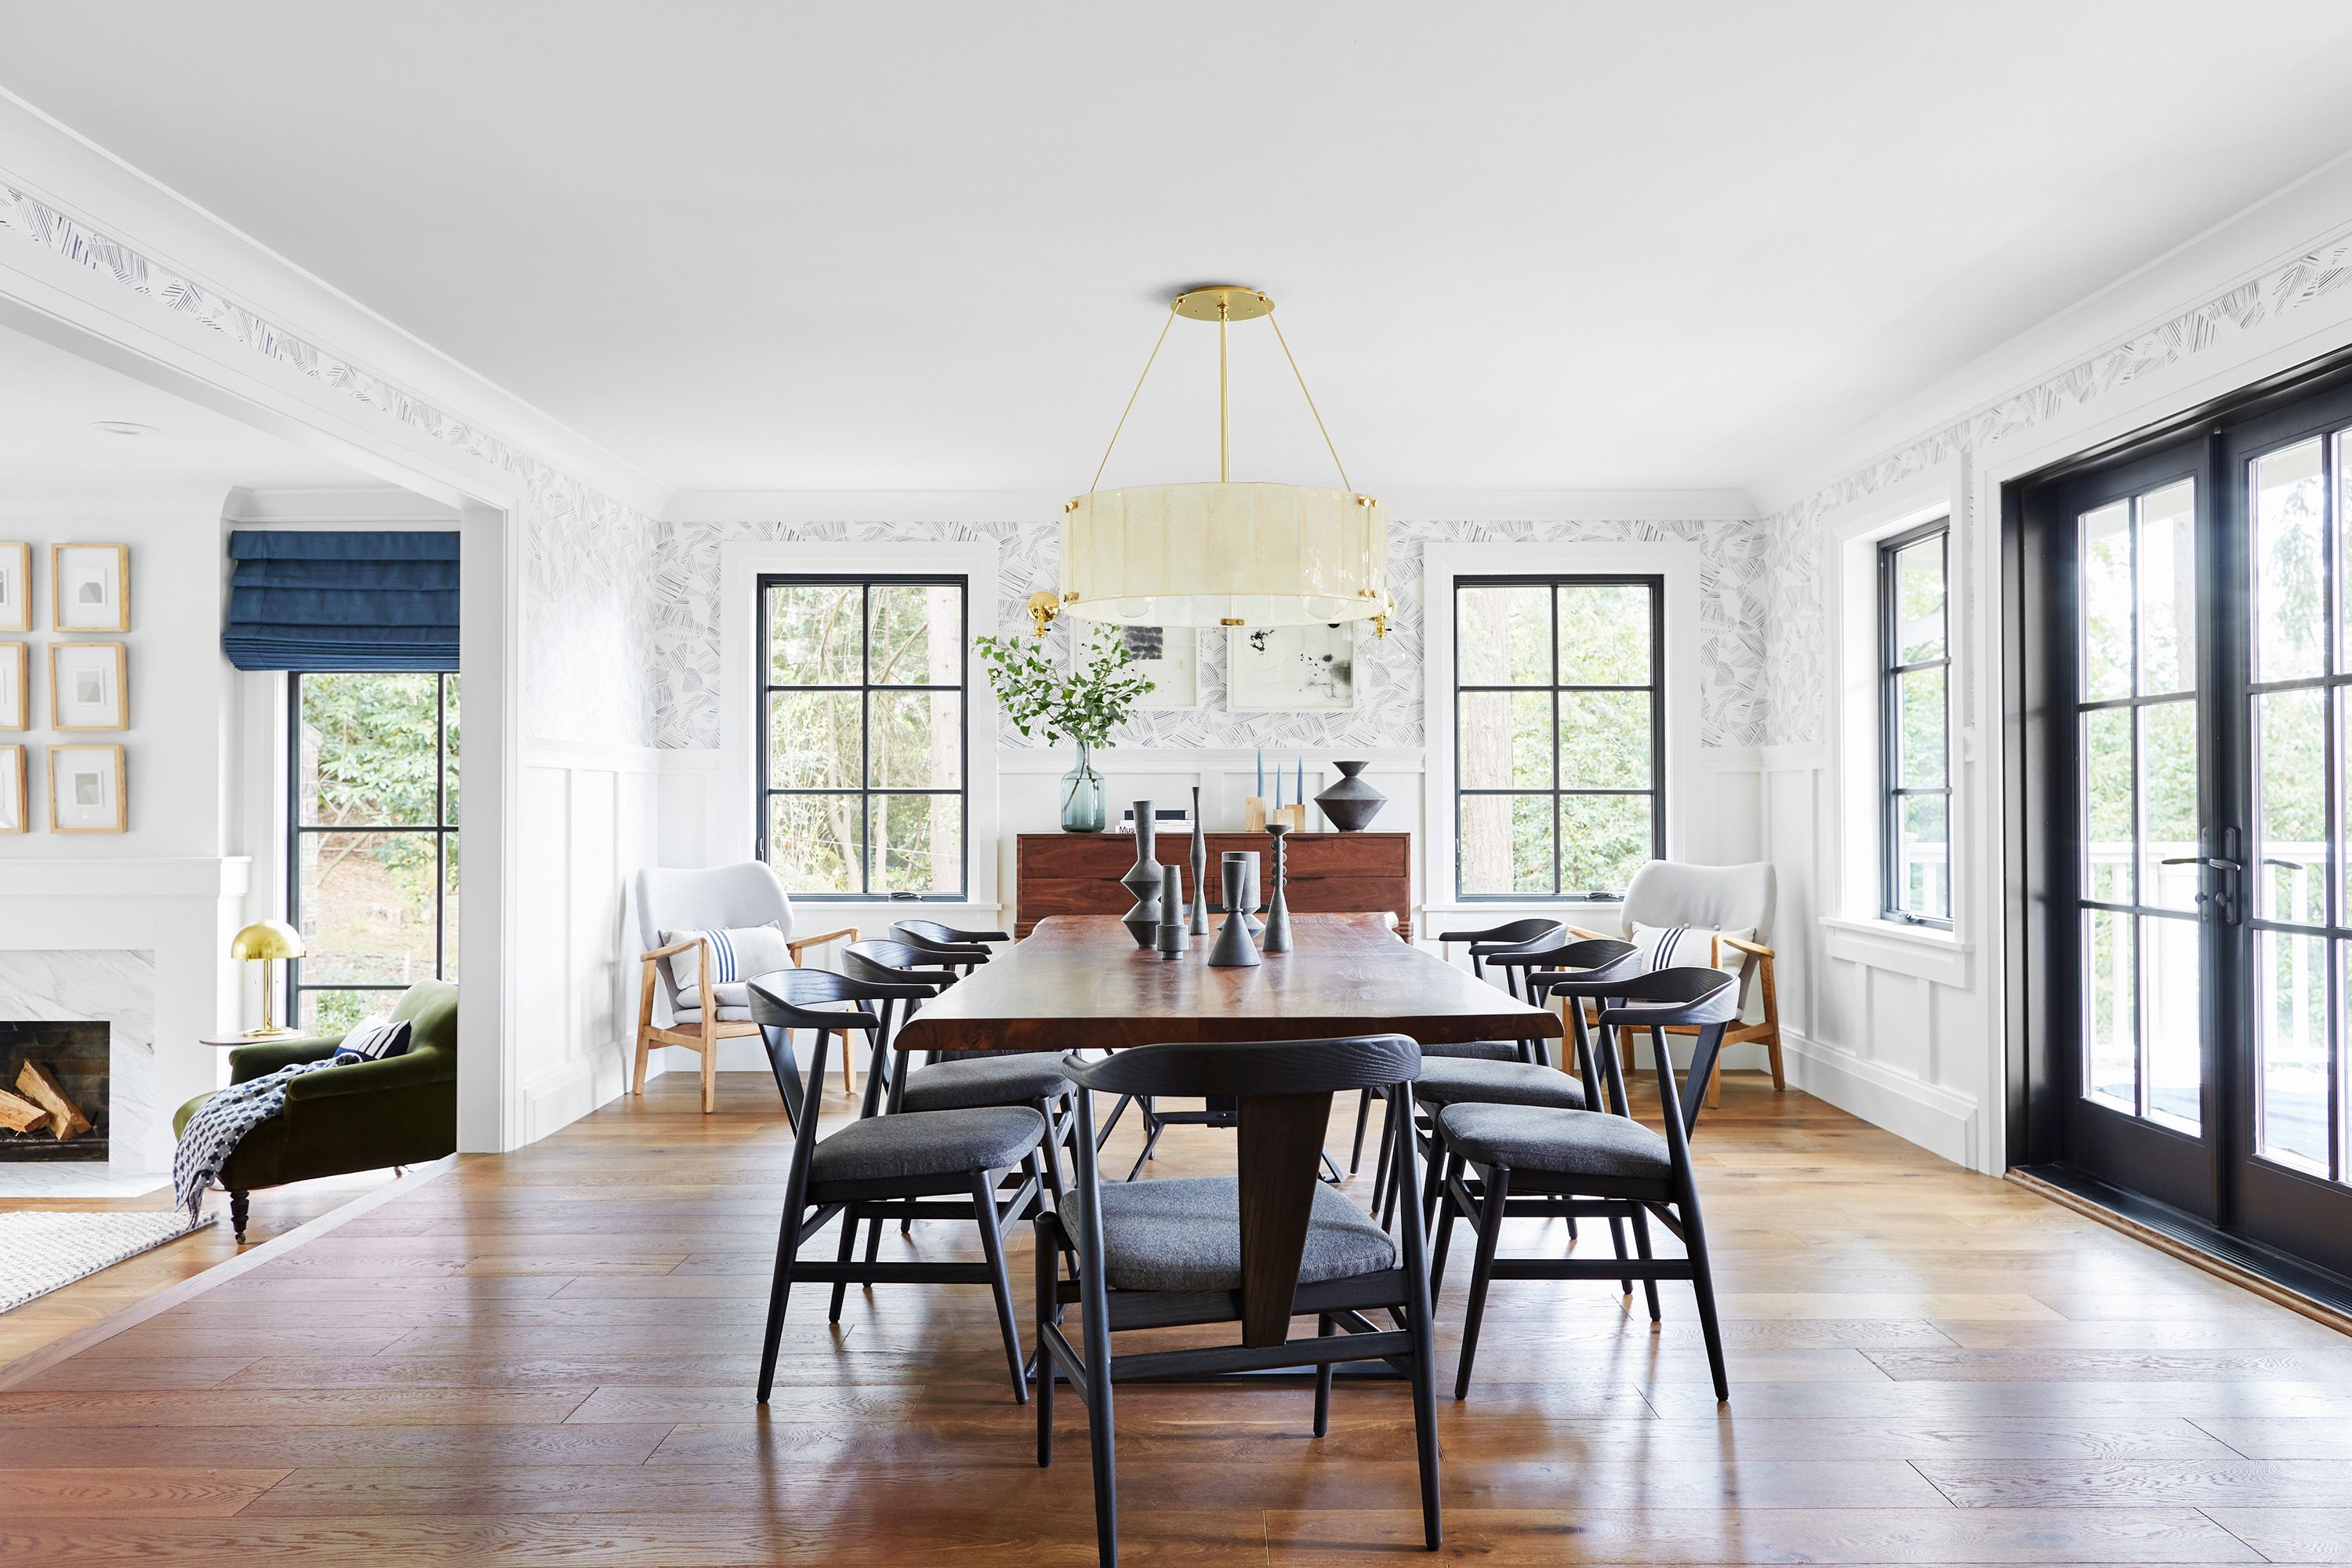 Decorating Trends on the Way Out in 2020, According to Top ...